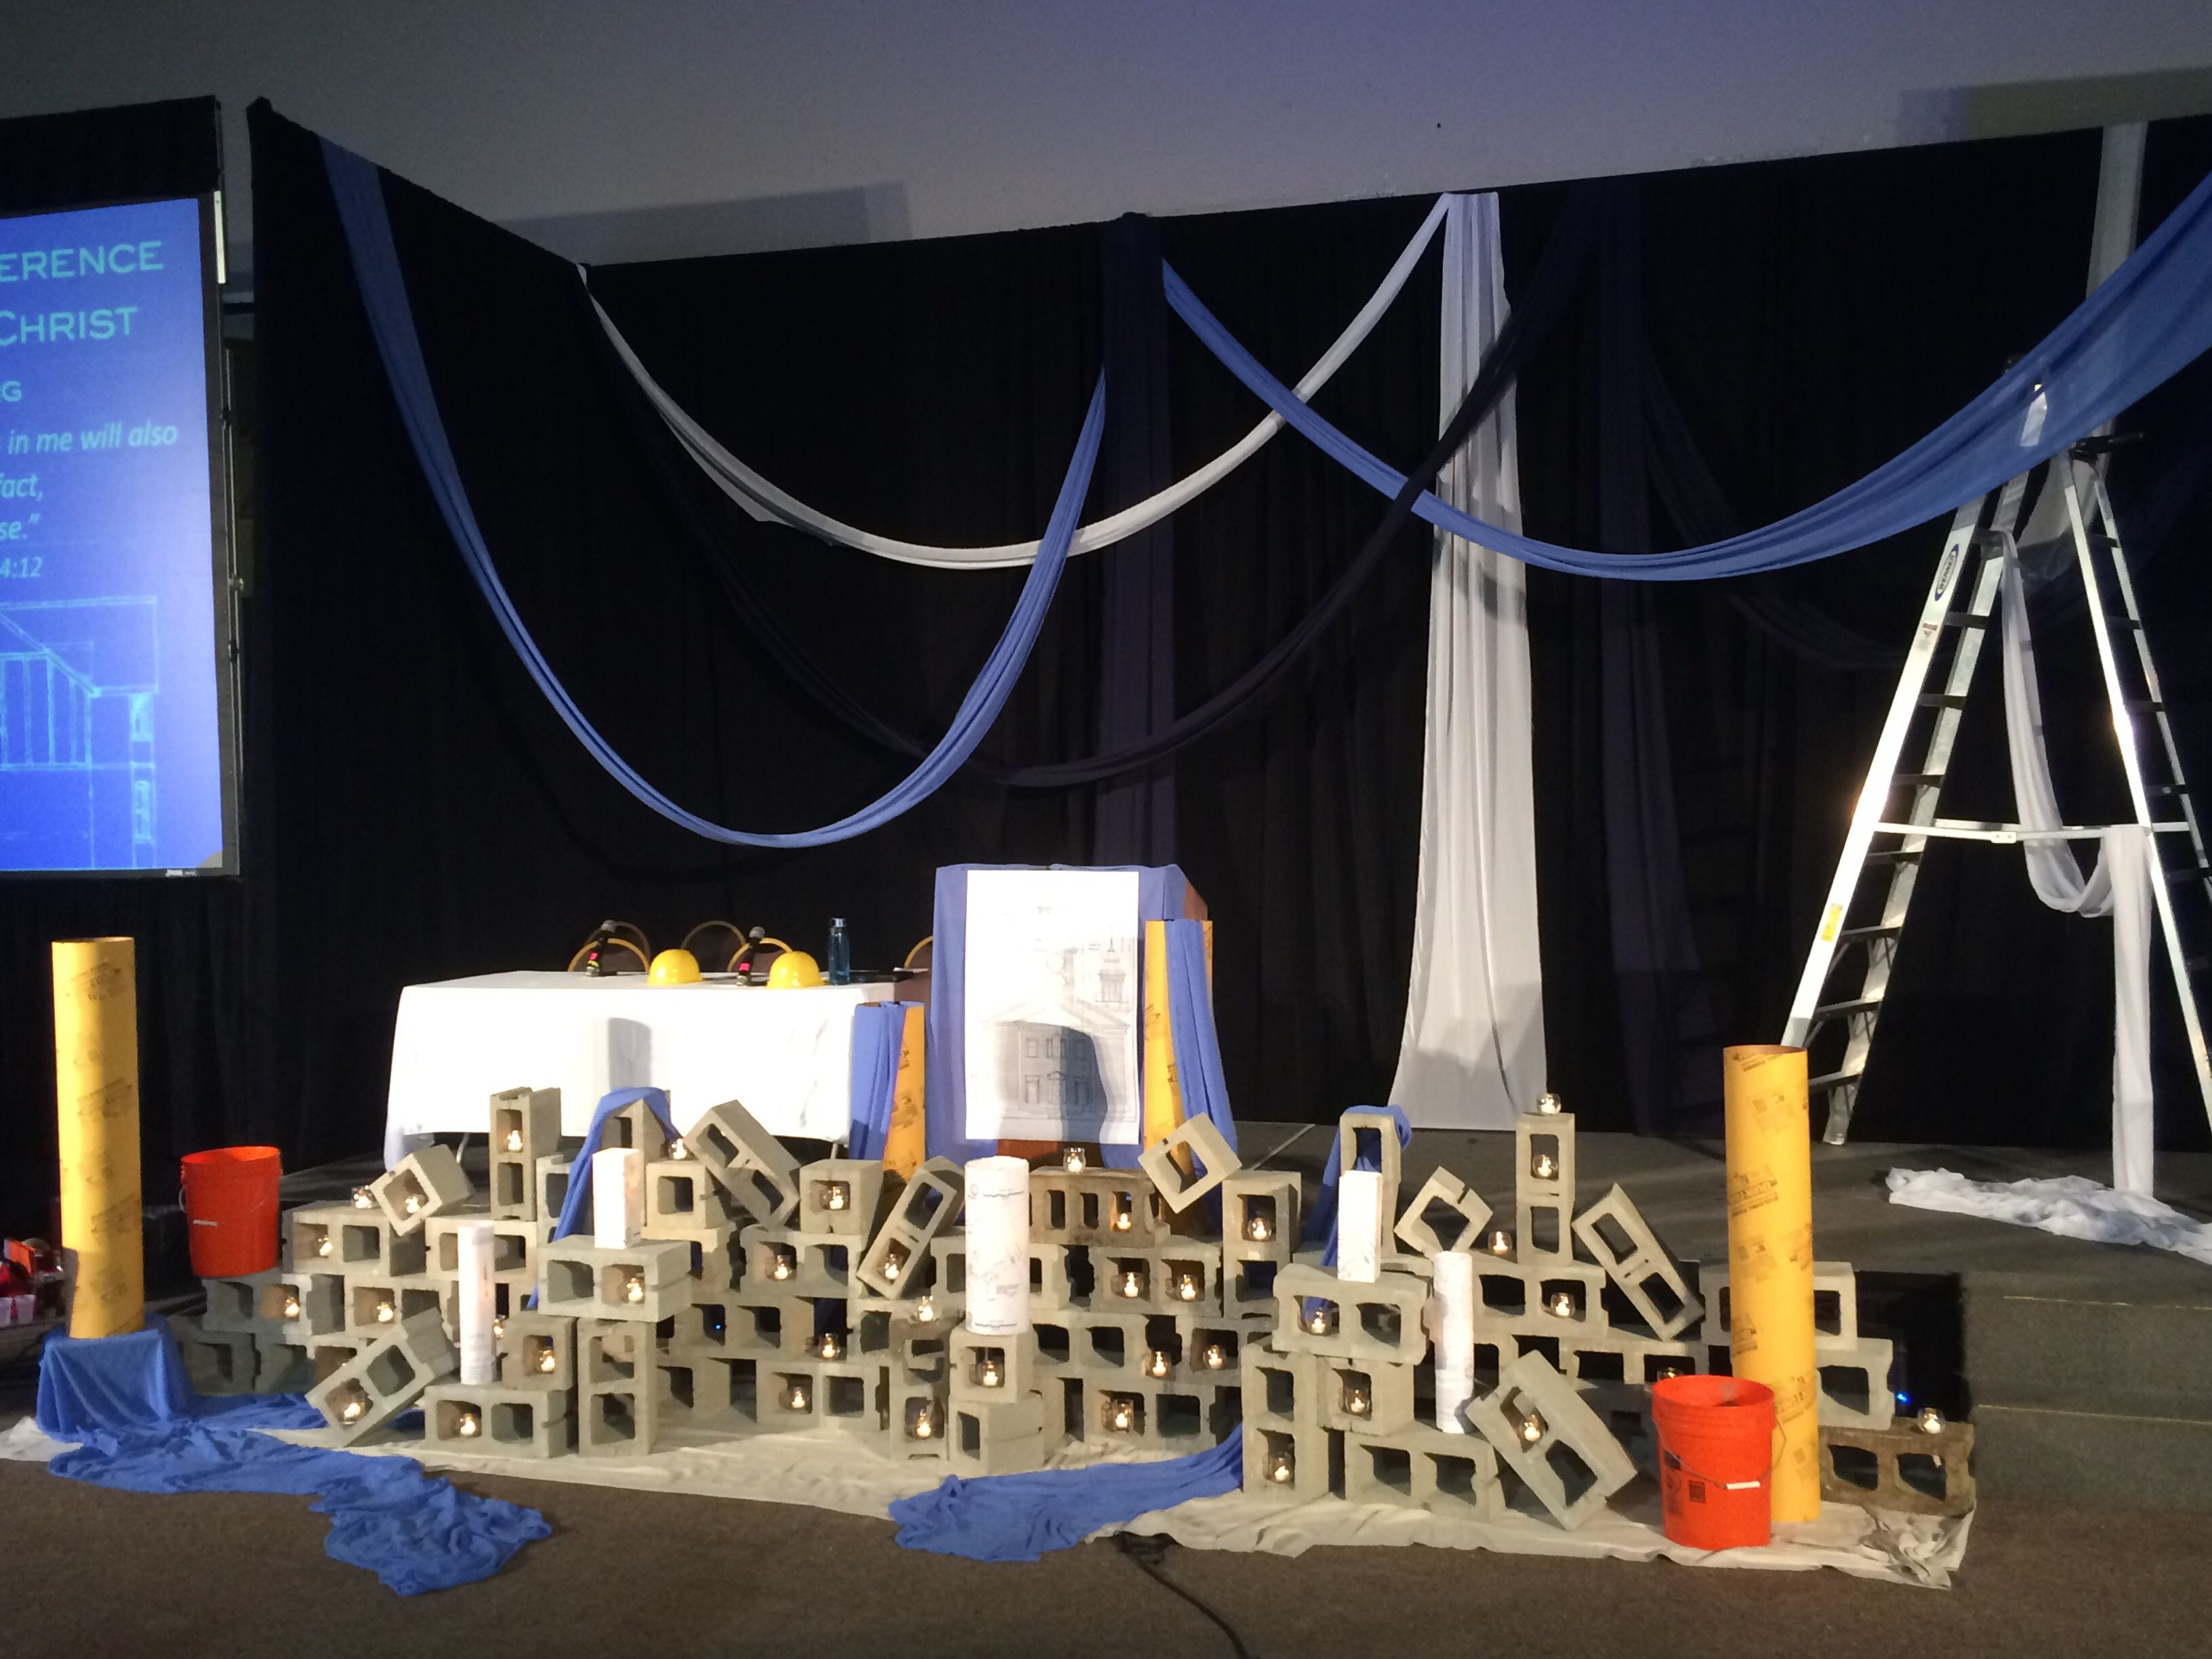 Greater worksgod has work for us to do construction themed altar greater worksgod has work for us to do construction themed altar and staging for massachusetts conference united church of christ annual meeting malvernweather Image collections